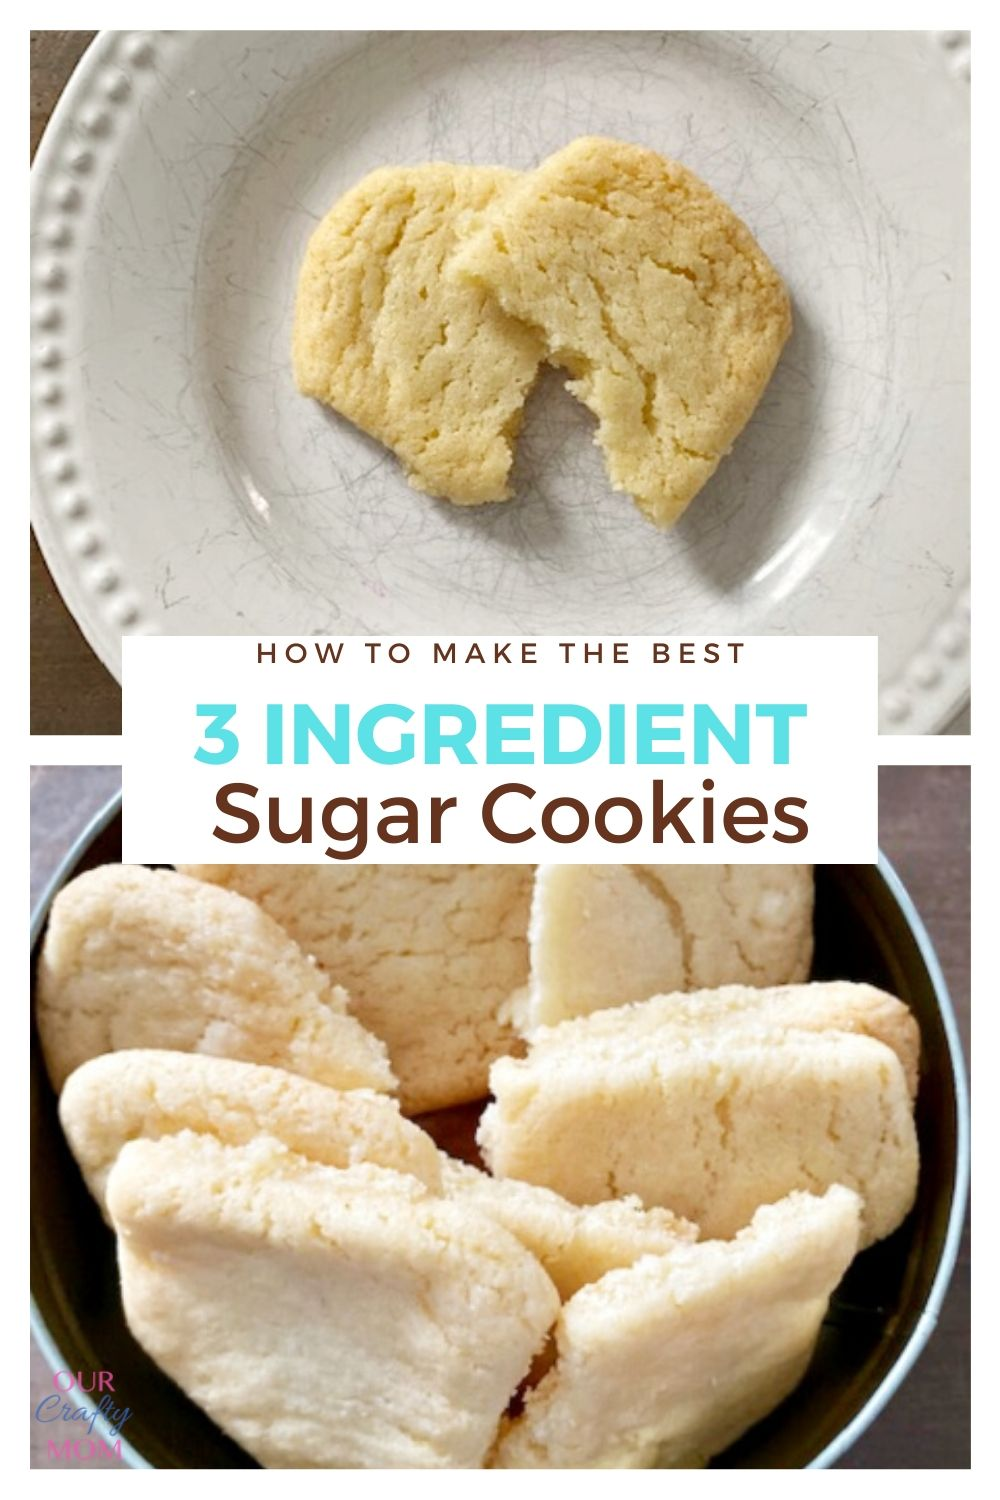 3 INGREDIENT SUGAR COOKIES COLLAGE